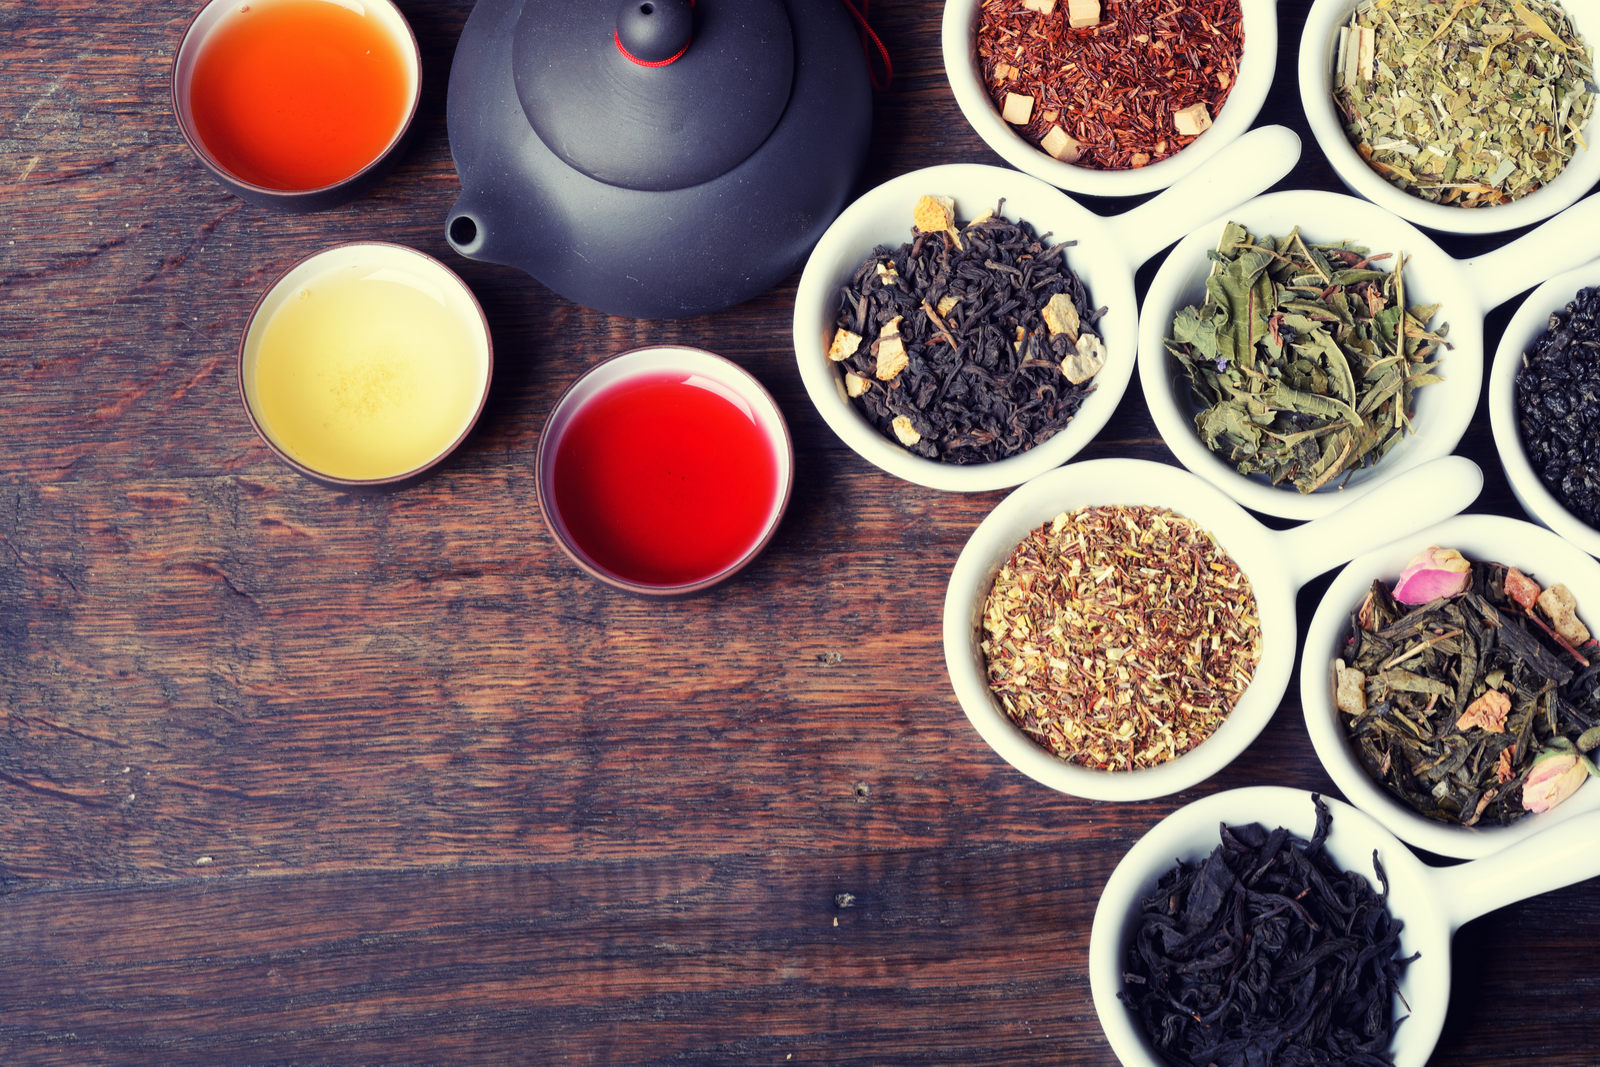 Tea, Herbs, and Spices | Enjoy The Perfect Cup: How To Brew Tea The Right Way